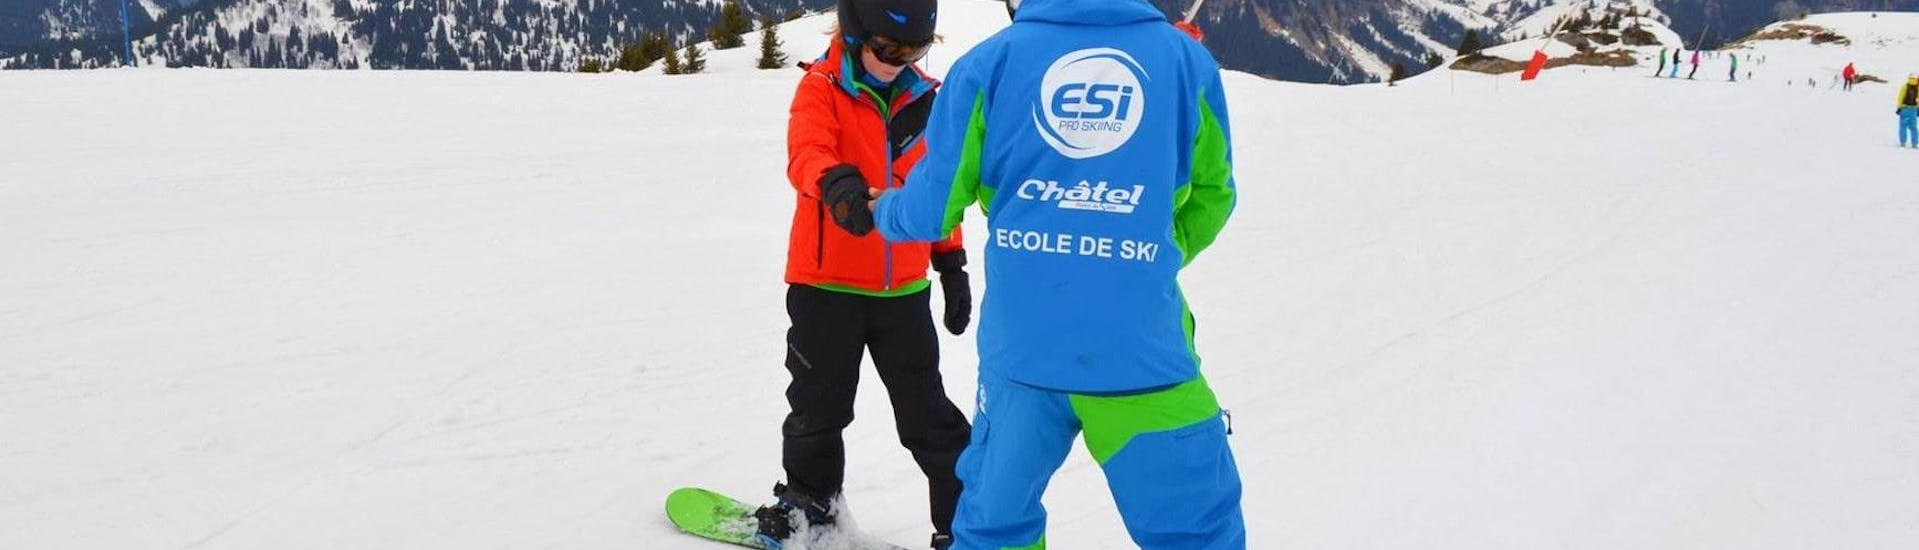 Private Snowboarding Lessons for Kids & Adults - Low Season with ESI Pro Skiing Chatel - Hero image